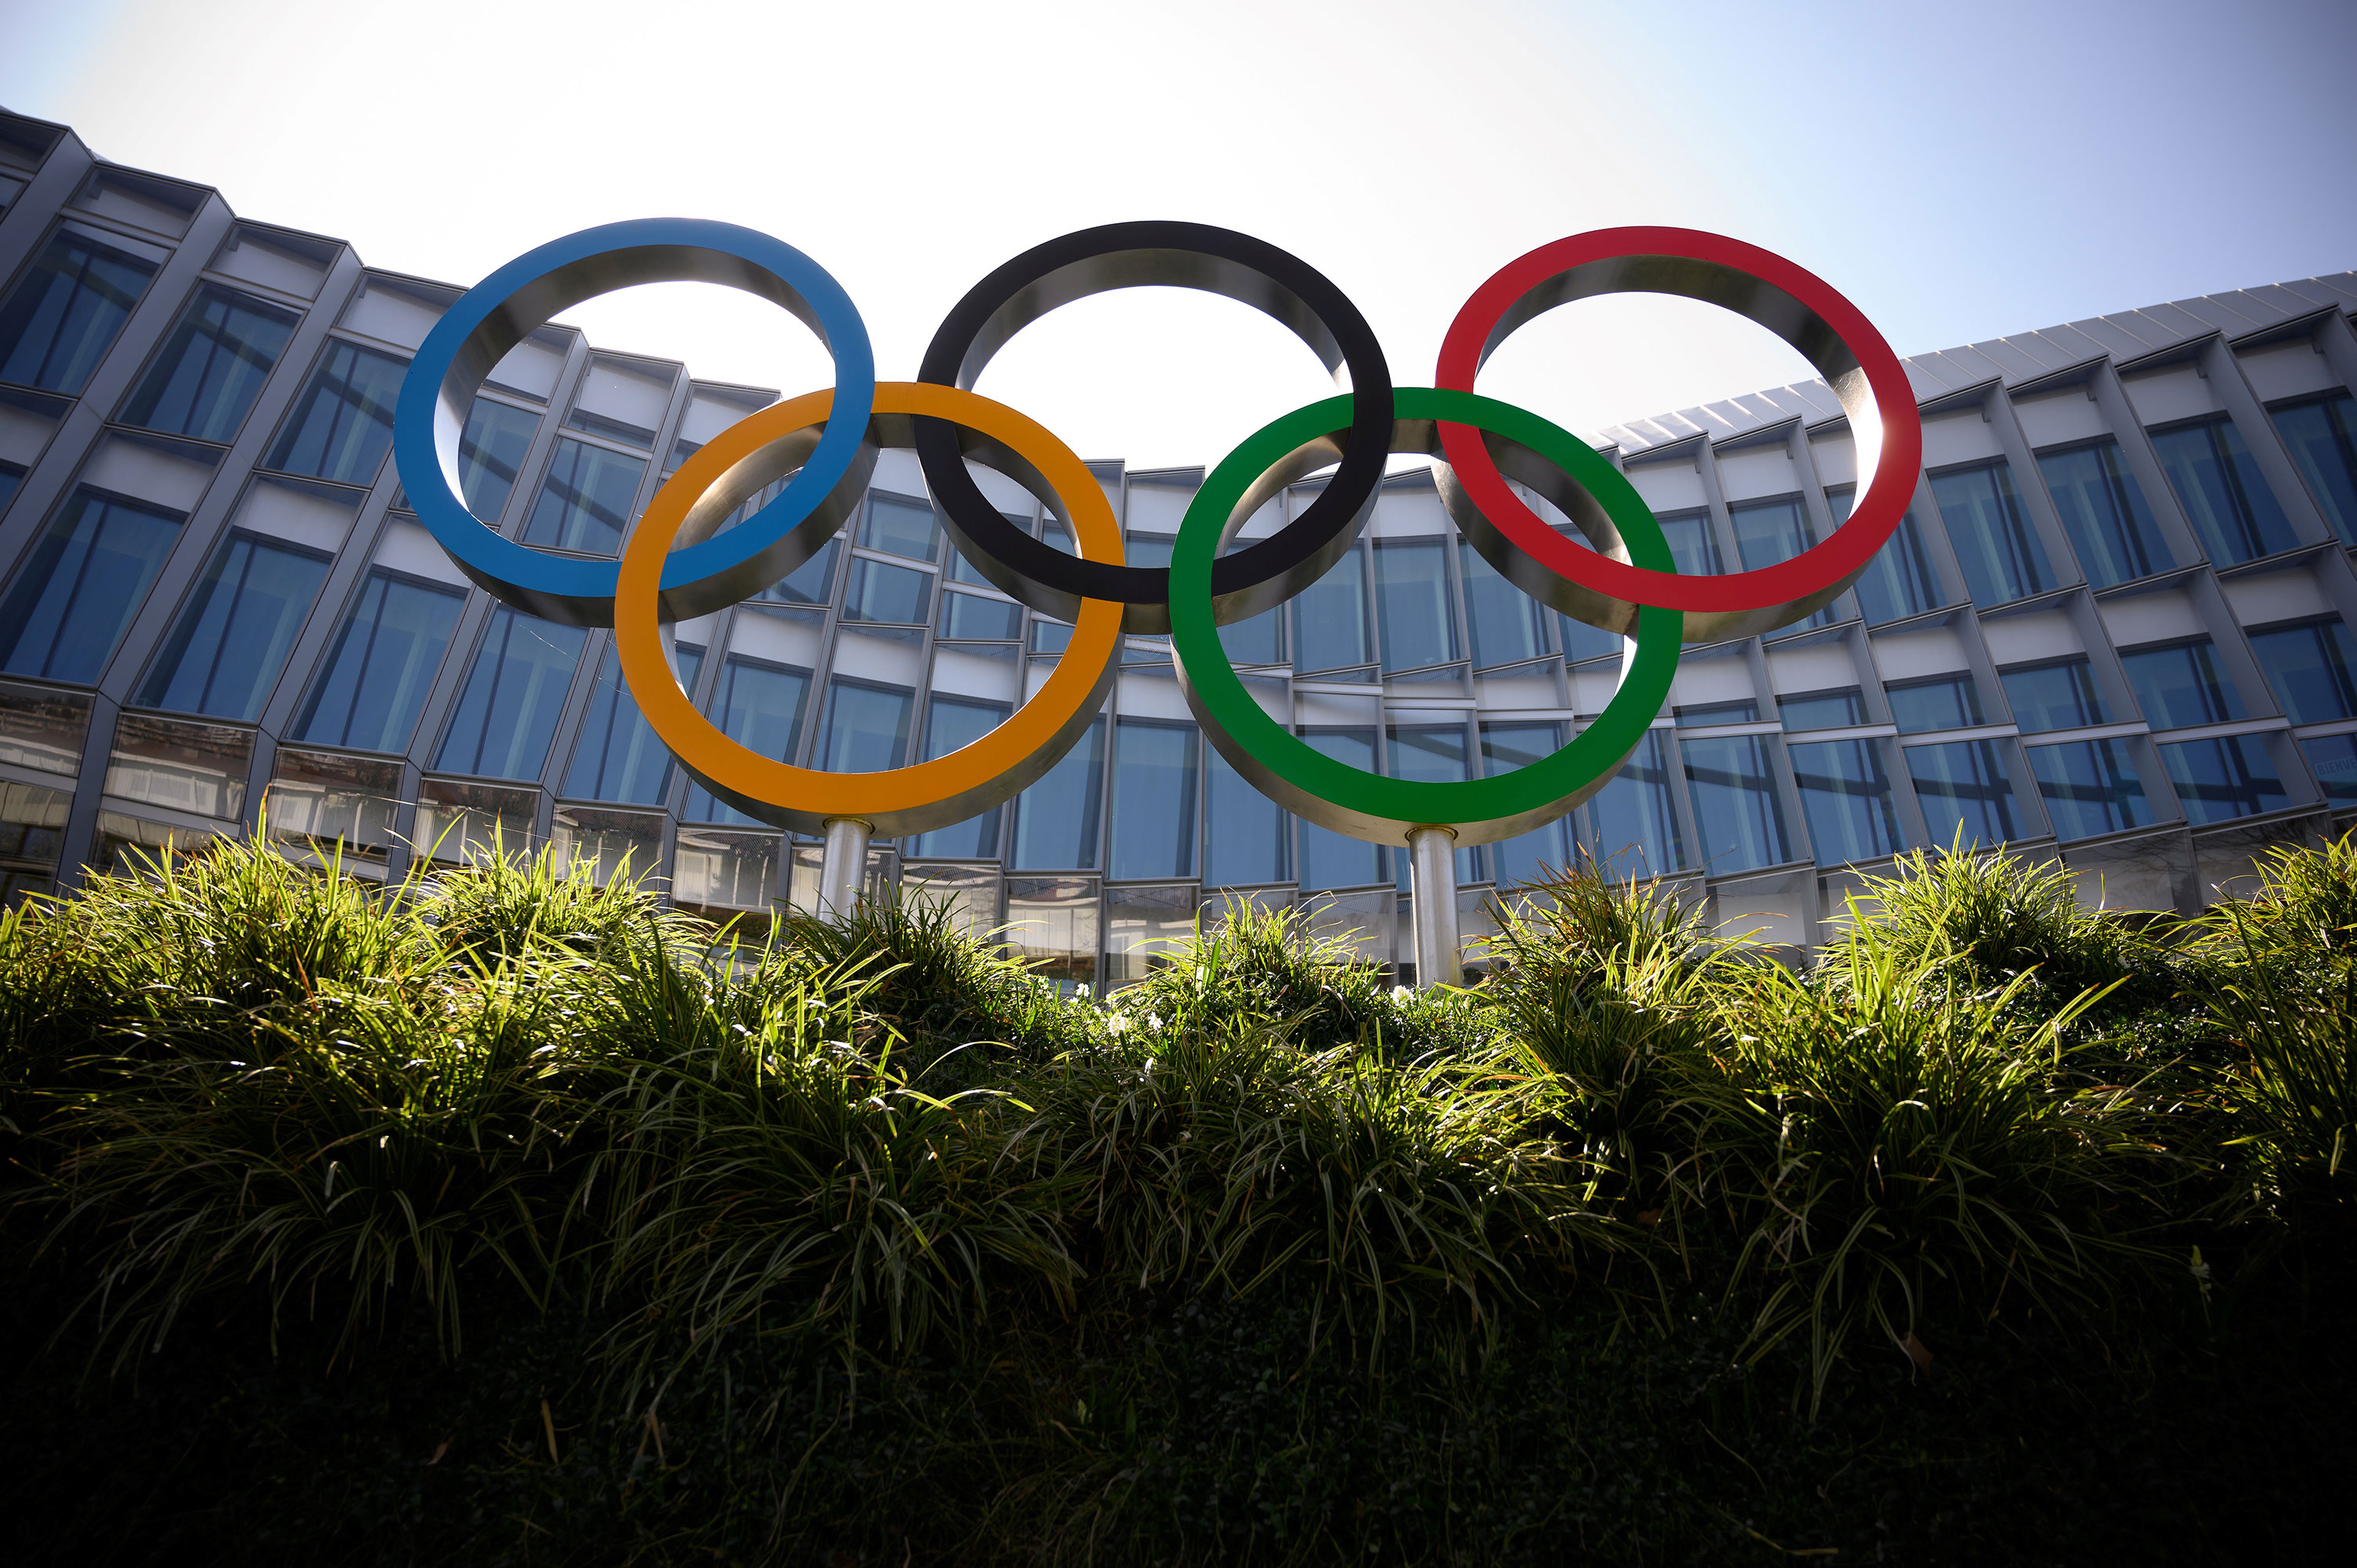 The Olympic rings logo is pictured in front of the headquarters of the International Olympic Committee in Lausanne, Switzerland on March 18.